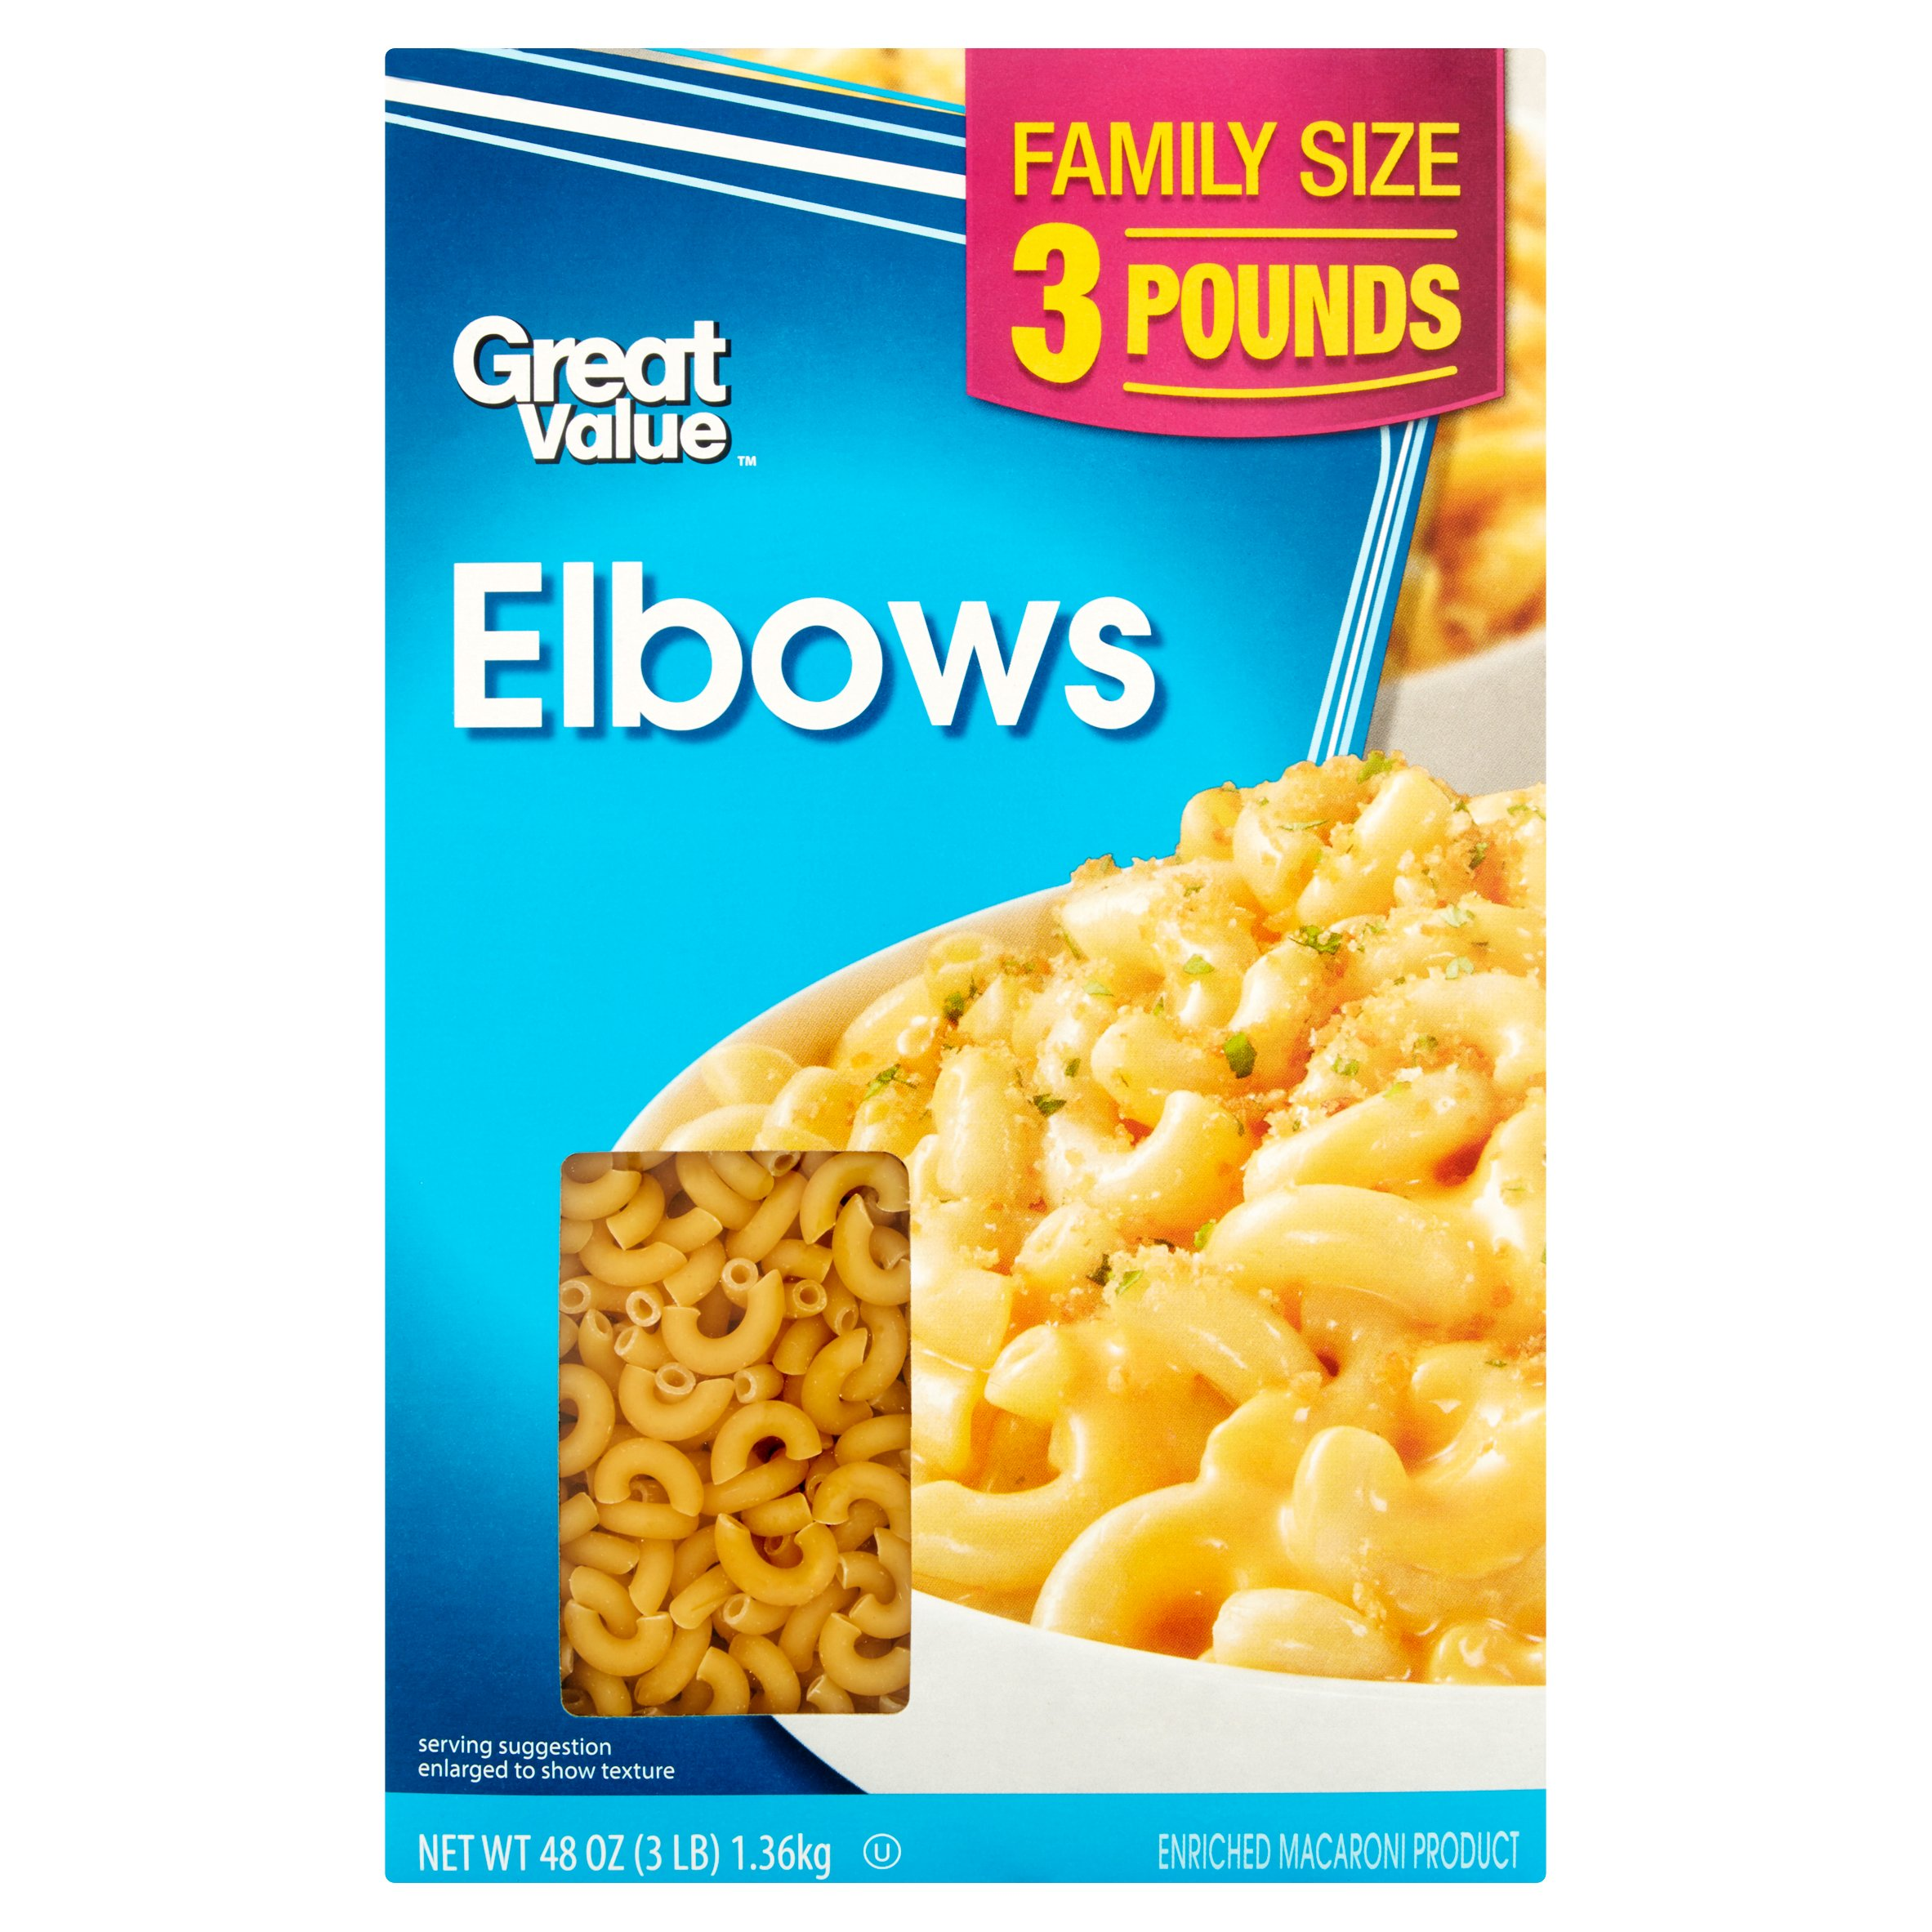 (2 pack) Great Value Elbows, Family Size, 3 lb